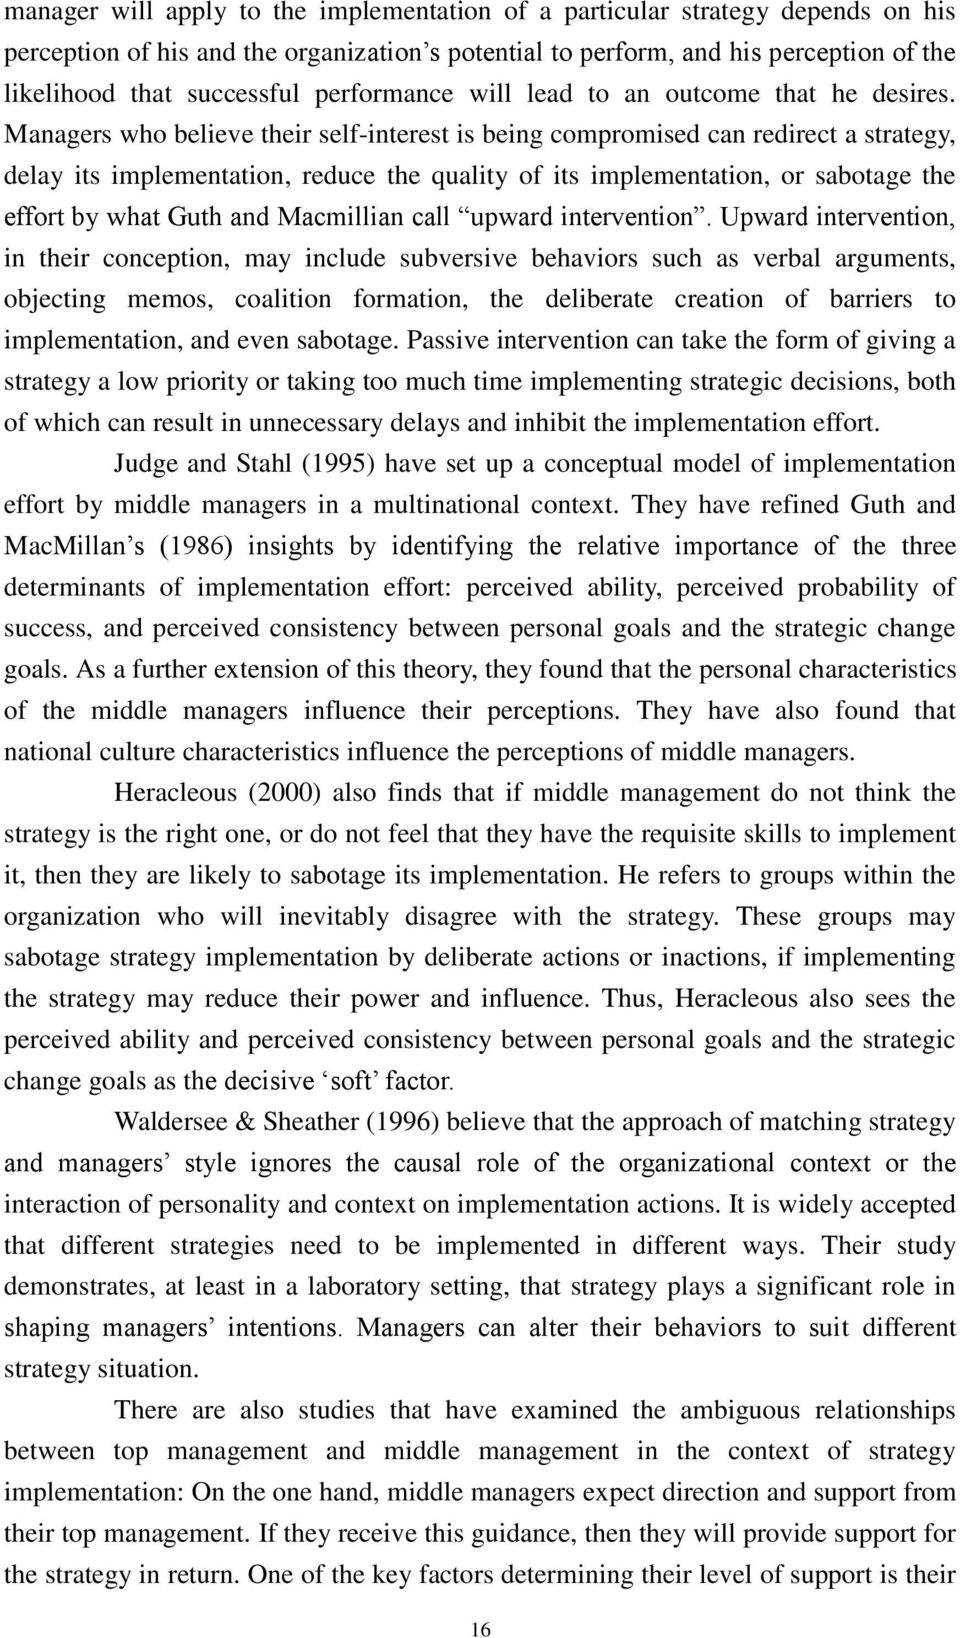 Managers who believe their self-interest is being compromised can redirect a strategy, delay its implementation, reduce the quality of its implementation, or sabotage the effort by what Guth and